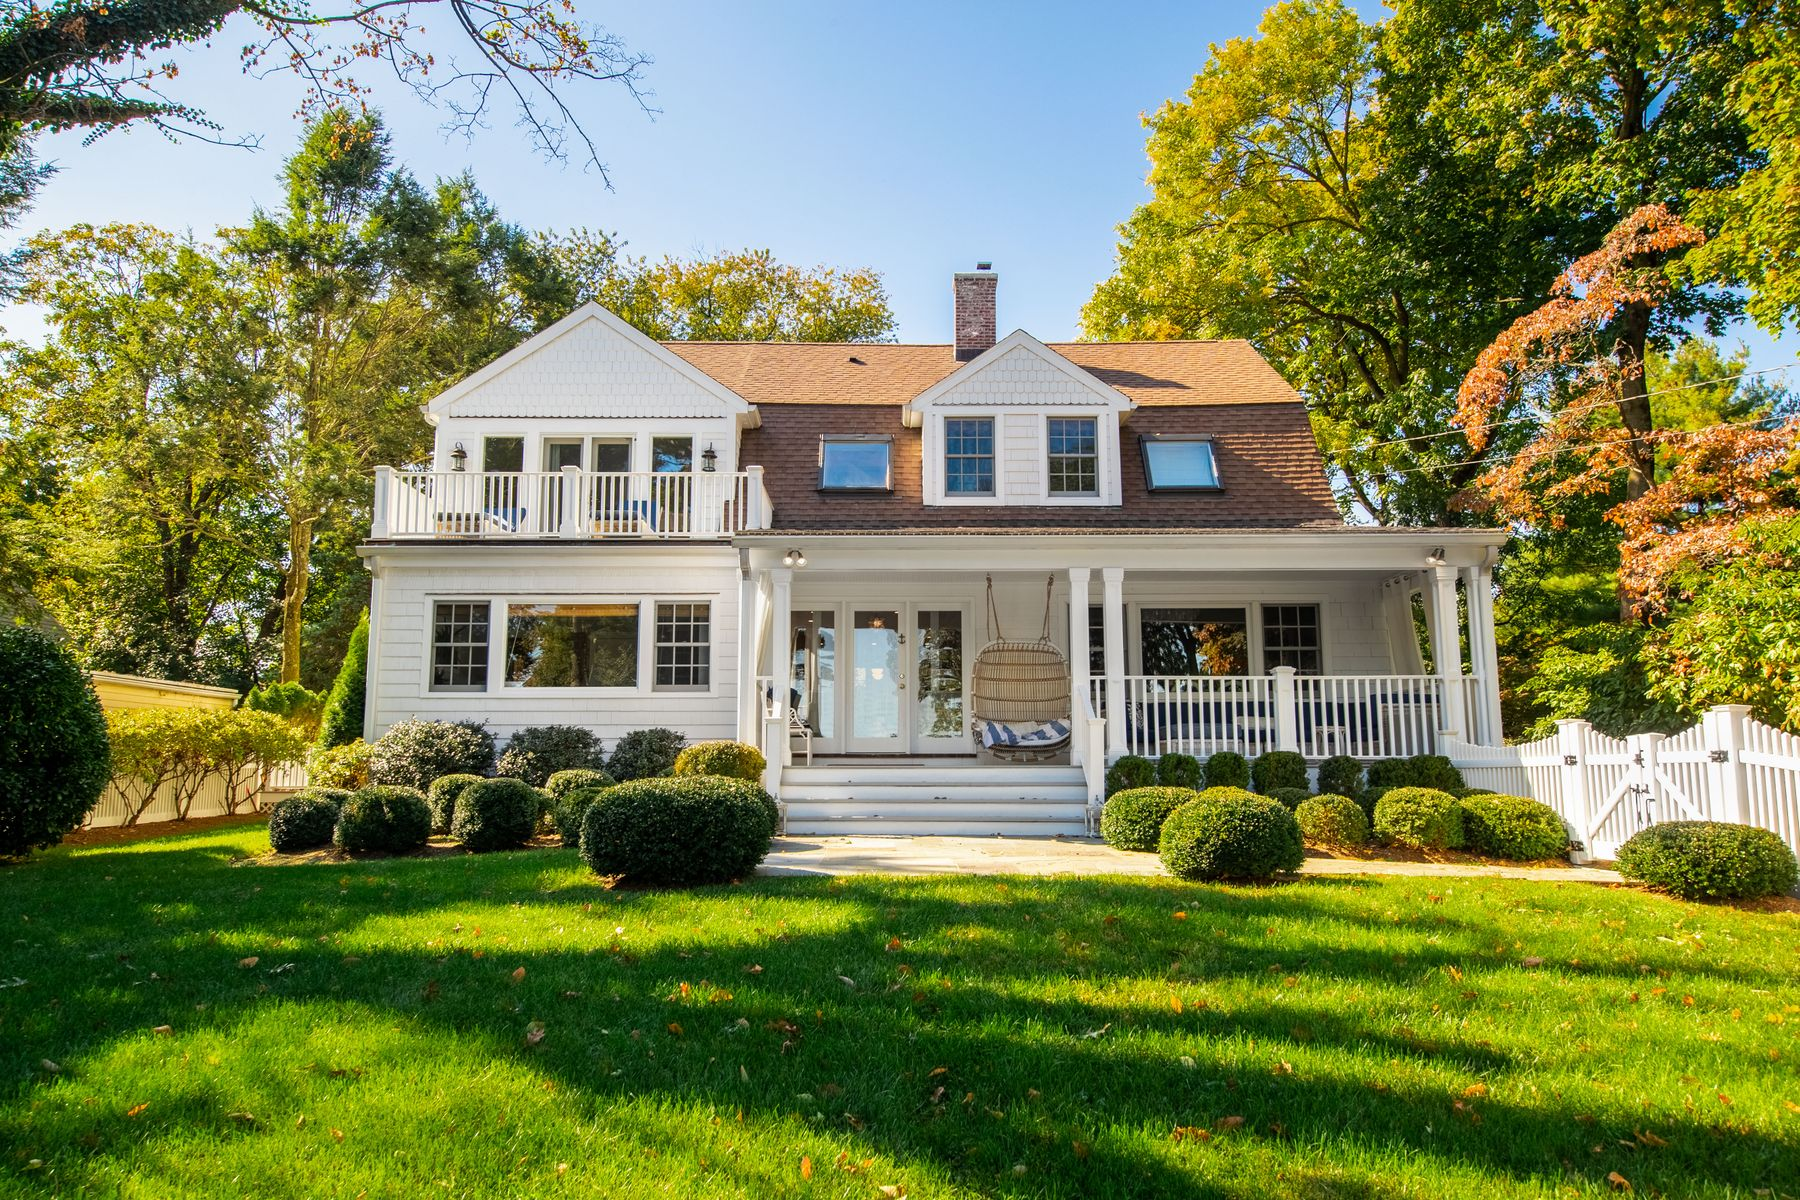 Property for Sale at Water Views and Pintrest Worthy 215 Shore Road Greenwich, Connecticut 06830 United States